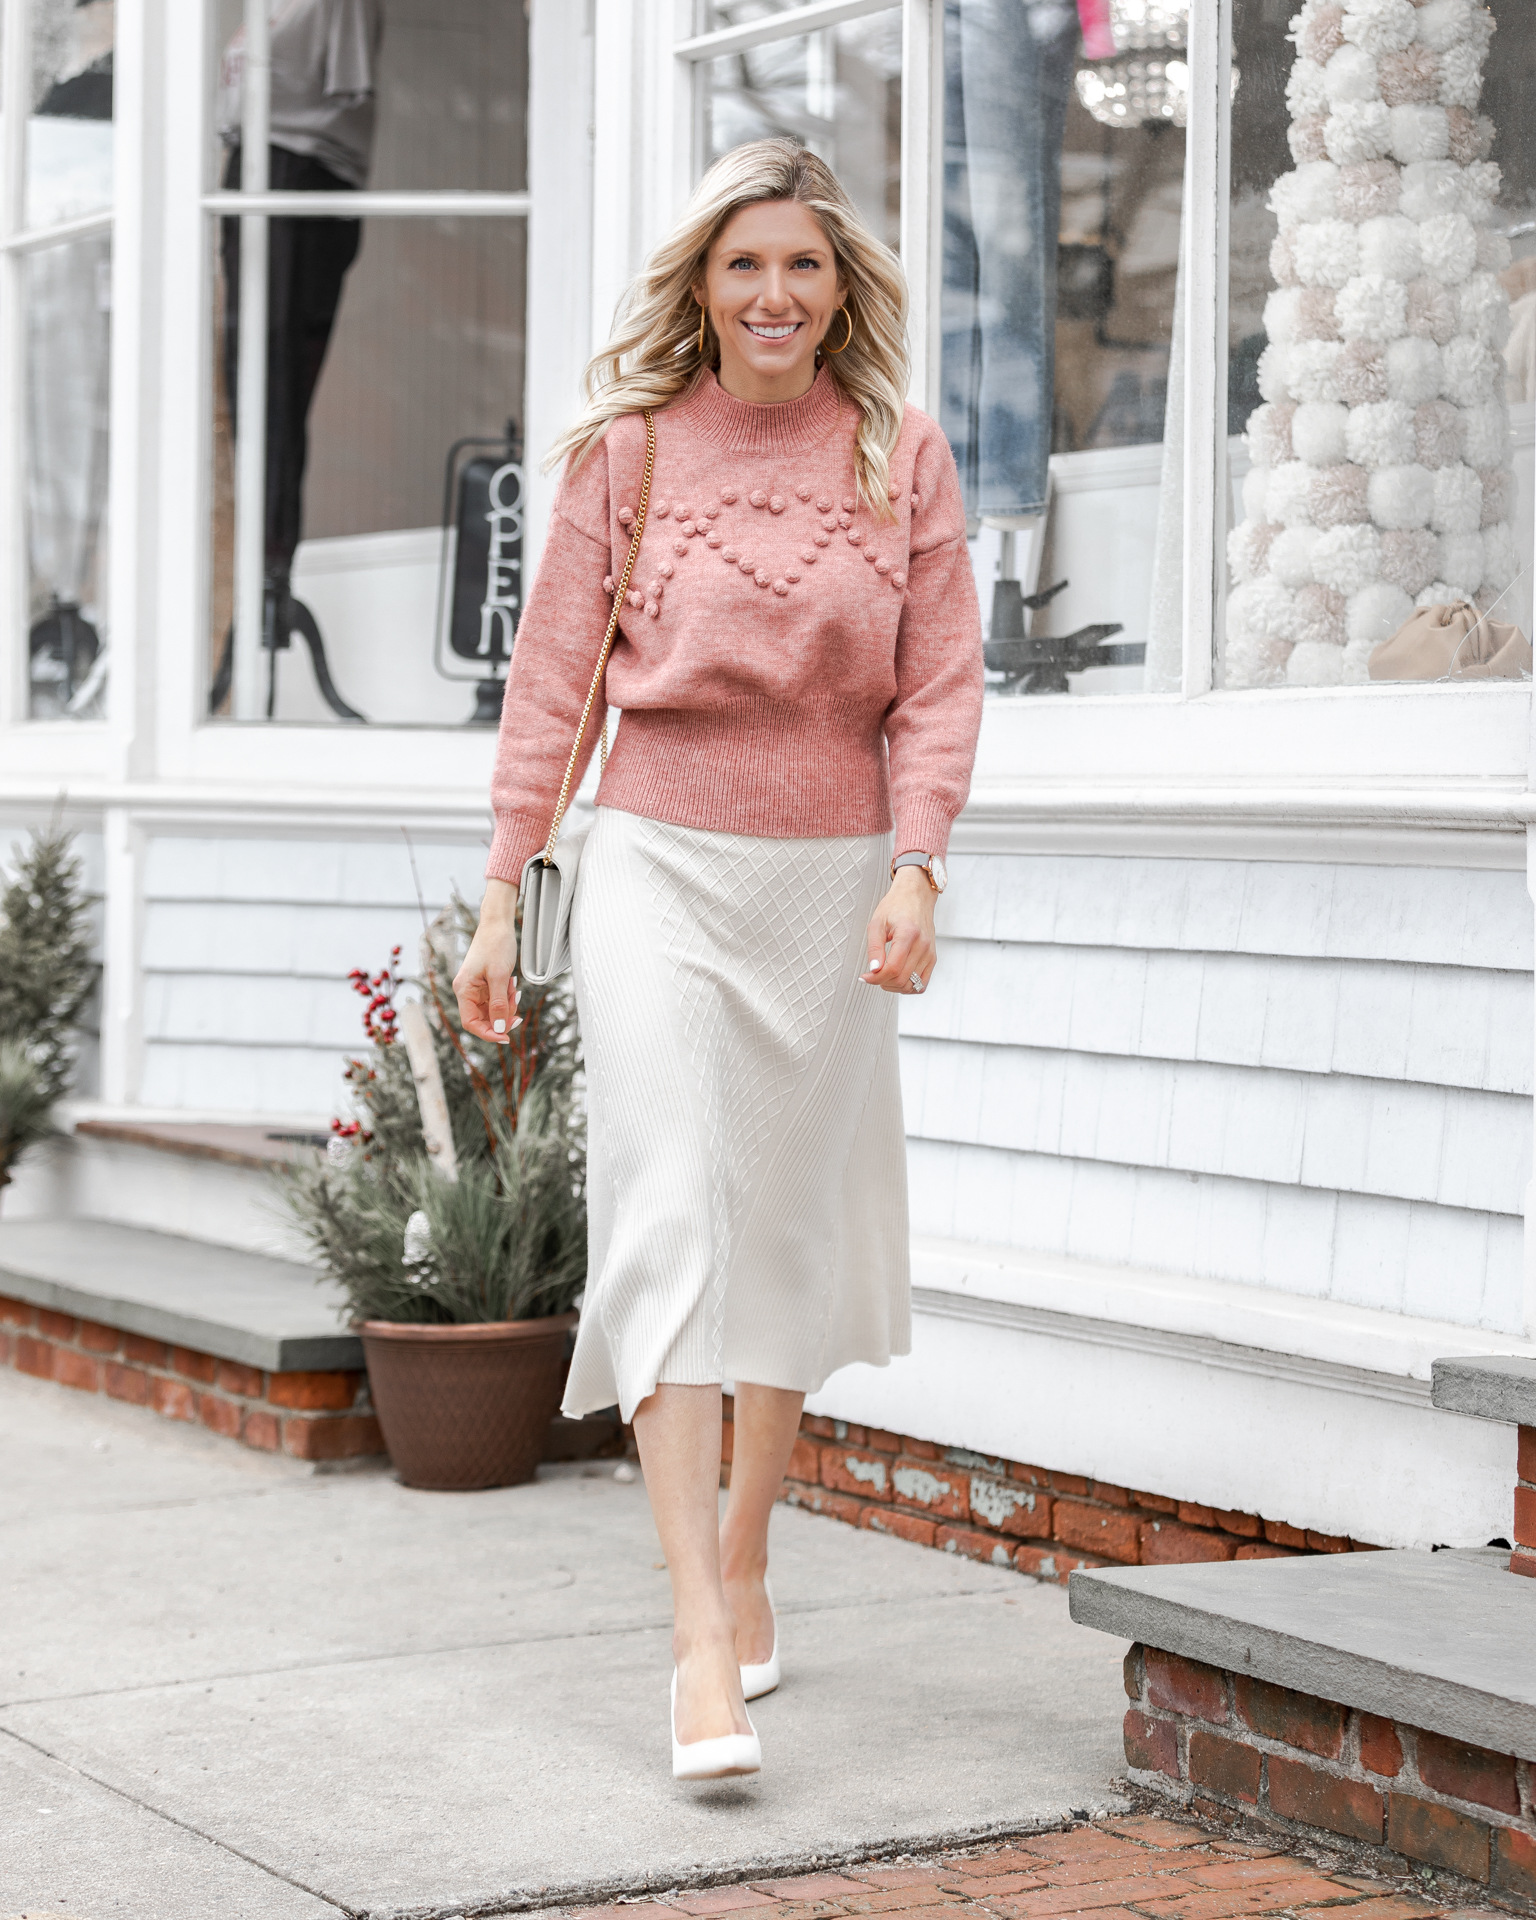 chic-and-sophisticated-winter-look-with-midi-skirt-the-glamorous-gal